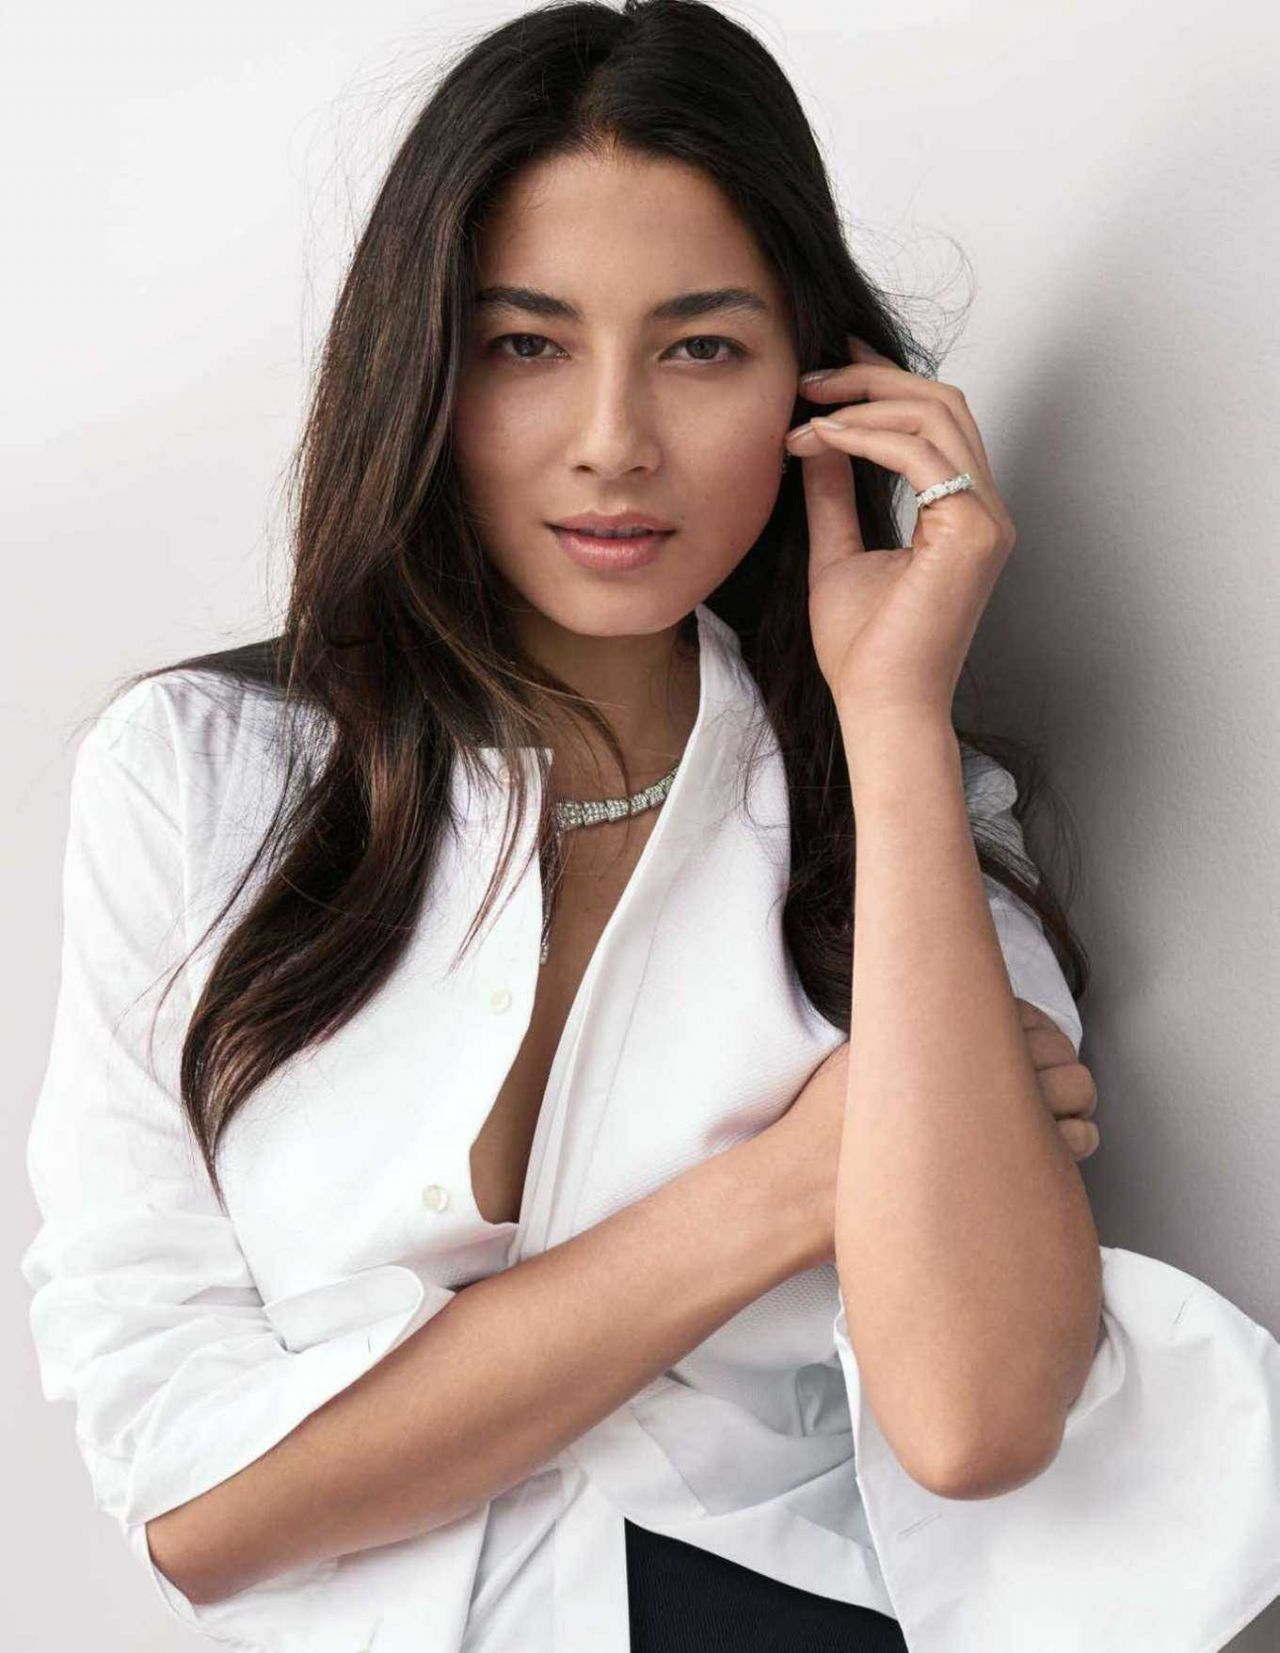 Jessica Gomes nude (62 photo) Cleavage, Instagram, butt